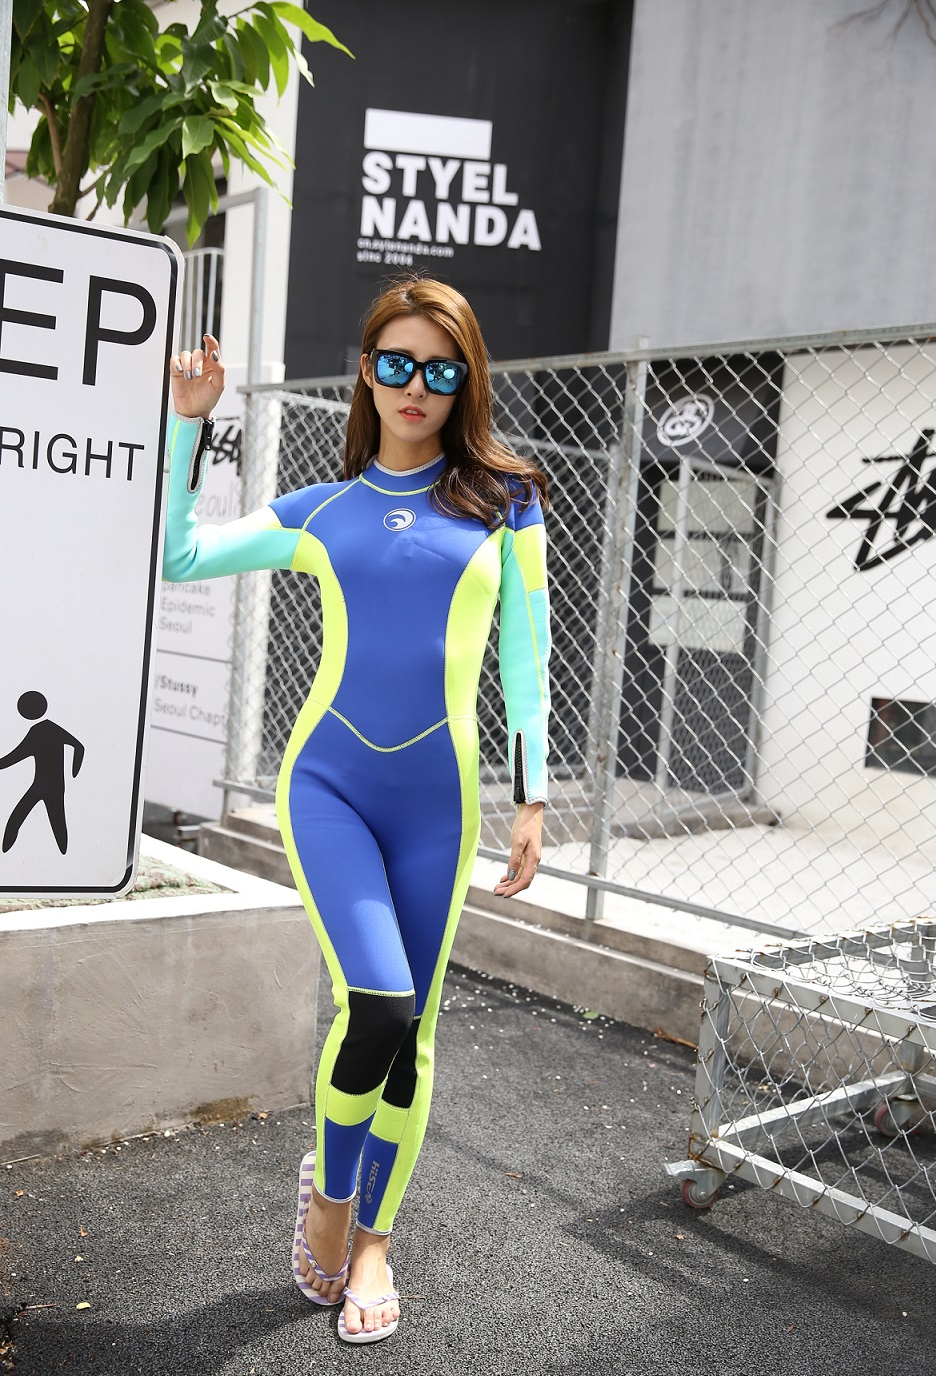 New arrival women's 3mm professional diving wetsuit long sleeve one piece Snorkeling Surfing wetsuit